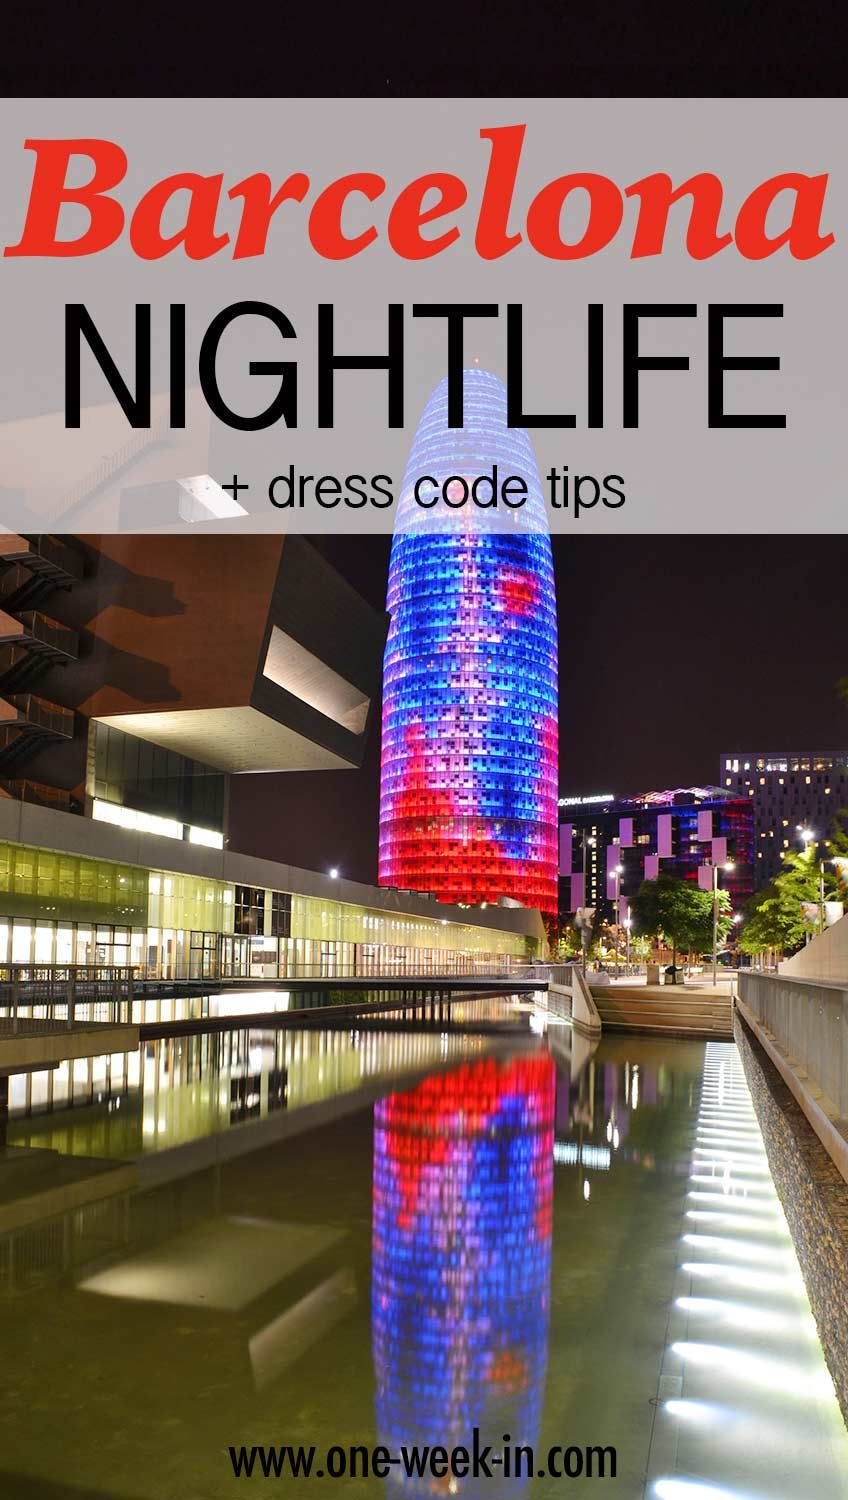 61be3b0e53a Barcelona nightlife. Tips and dress code as well as the trendiest nightclubs.   barcelonanightlife  nightlifebarcelona  partybarcelona  barcelonaparty